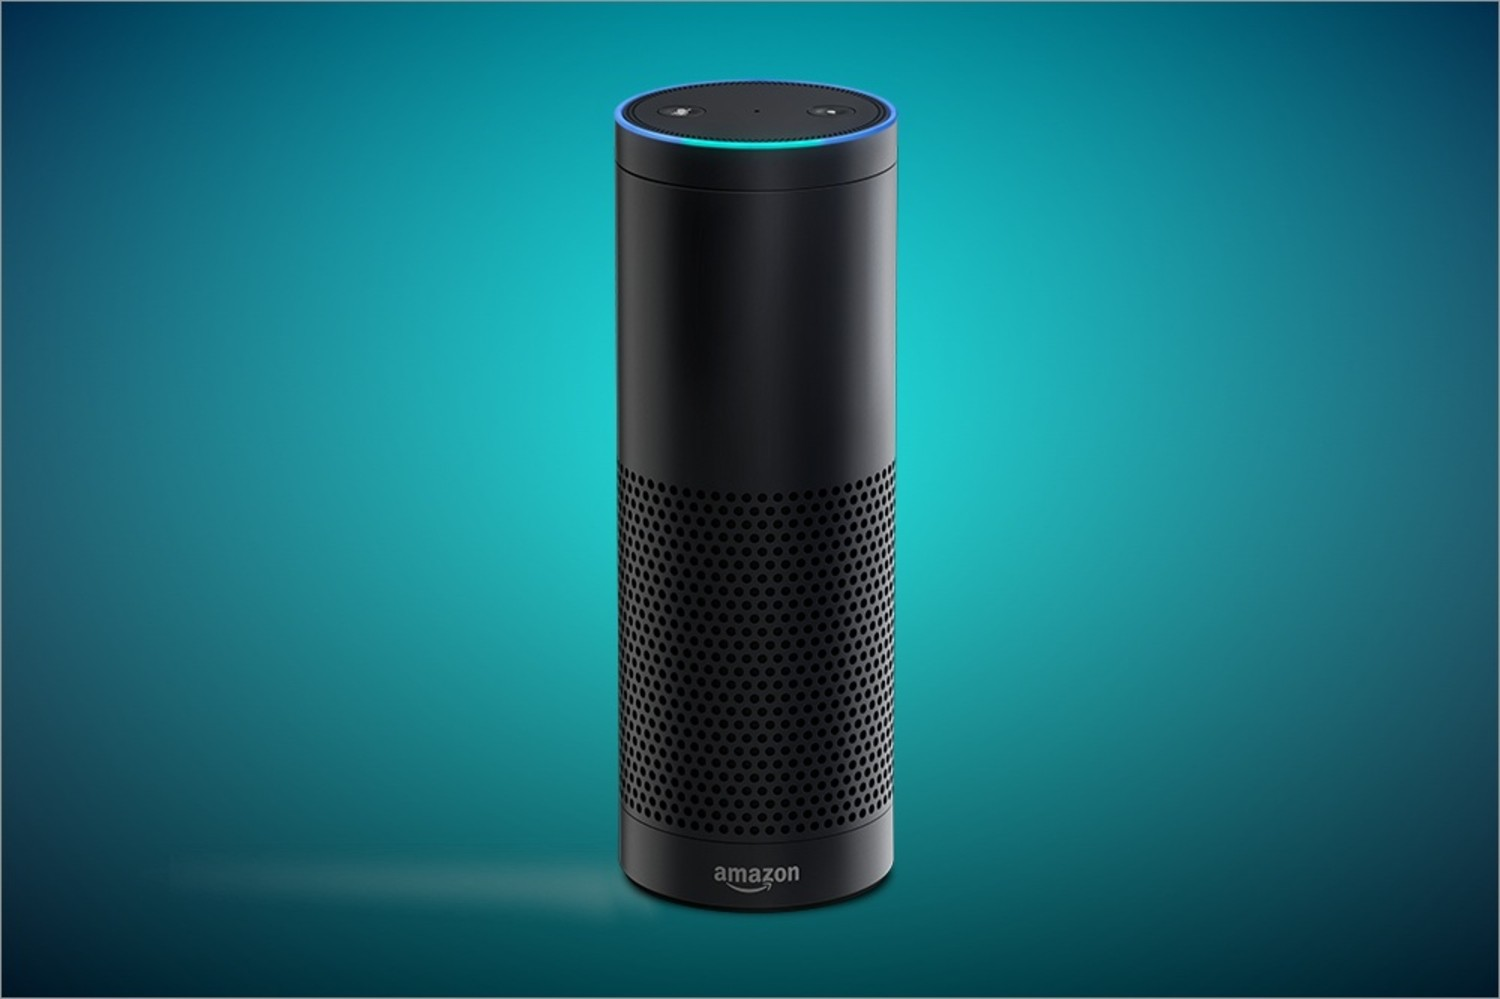 amazon echo alexa Amazon's Alexa Accused Of Being Politically Biased